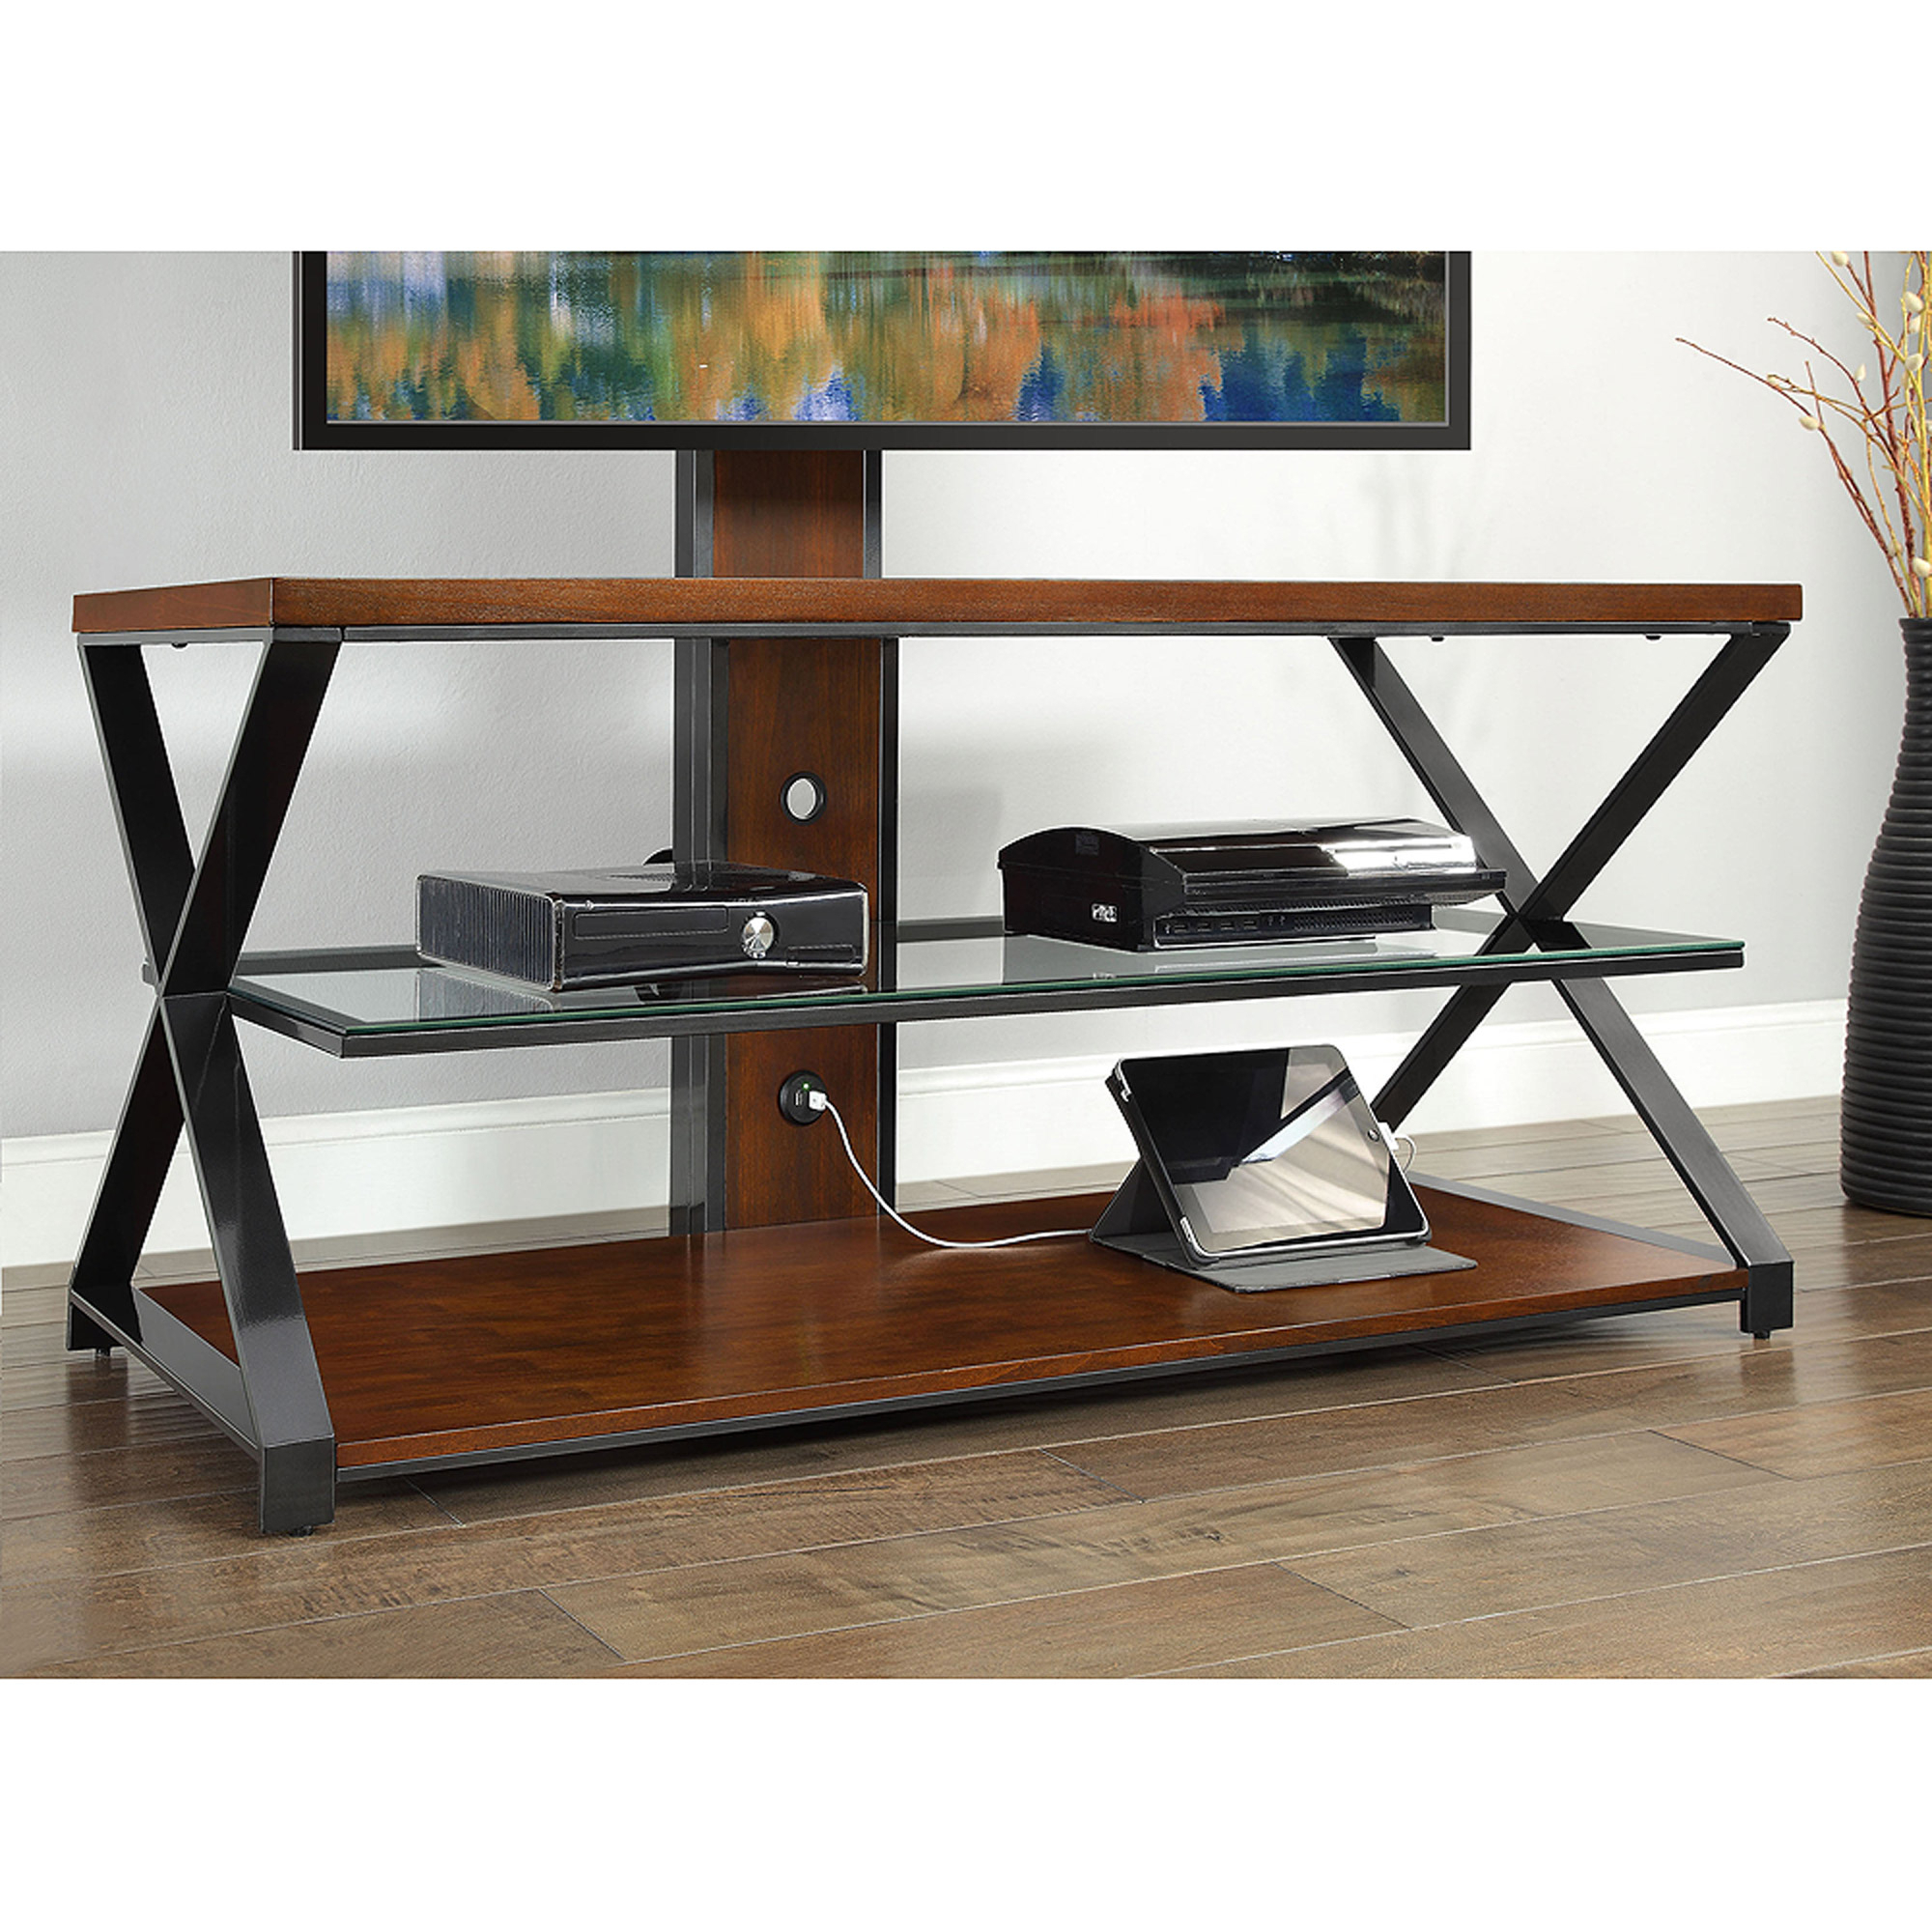 Sarah Tv Stands: Jaxon 3-In-1 Cognac Tv Stand For Tvs Up To 70'' in Jaxon 65 Inch Tv Stands (Image 21 of 30)